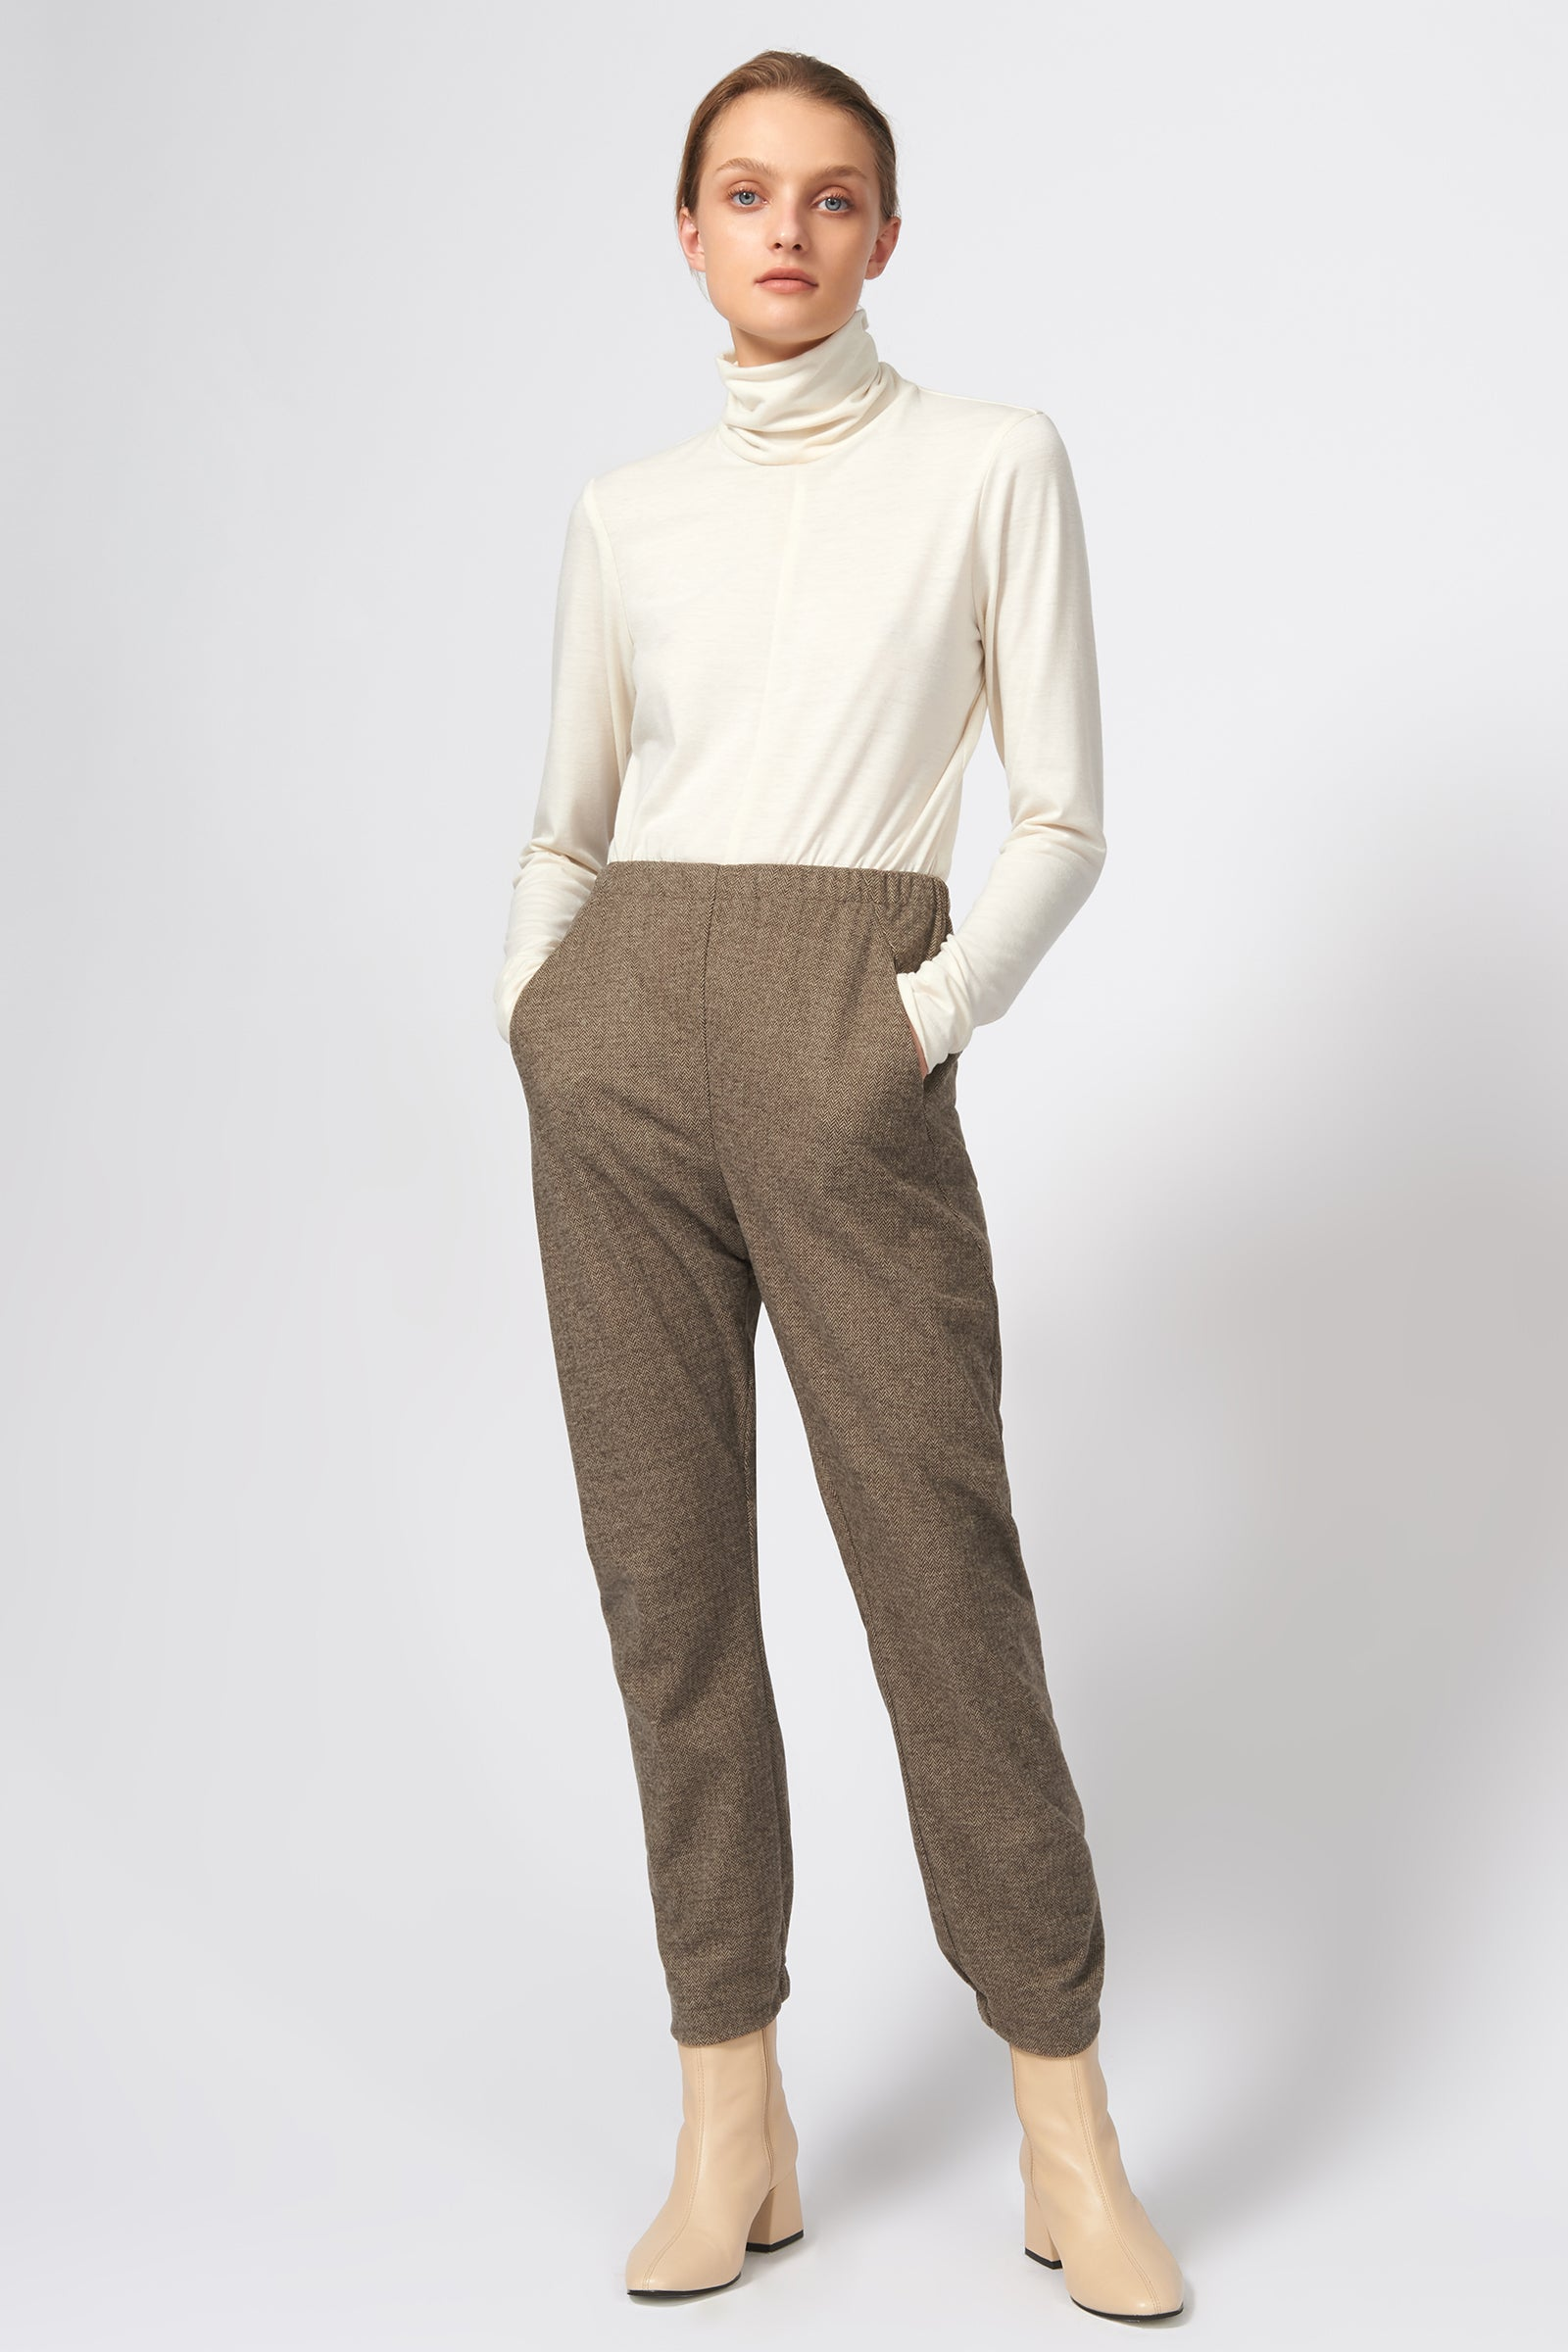 Kal Rieman Angle Seam Jogger in Taupe Herringbone on Model Full Front View